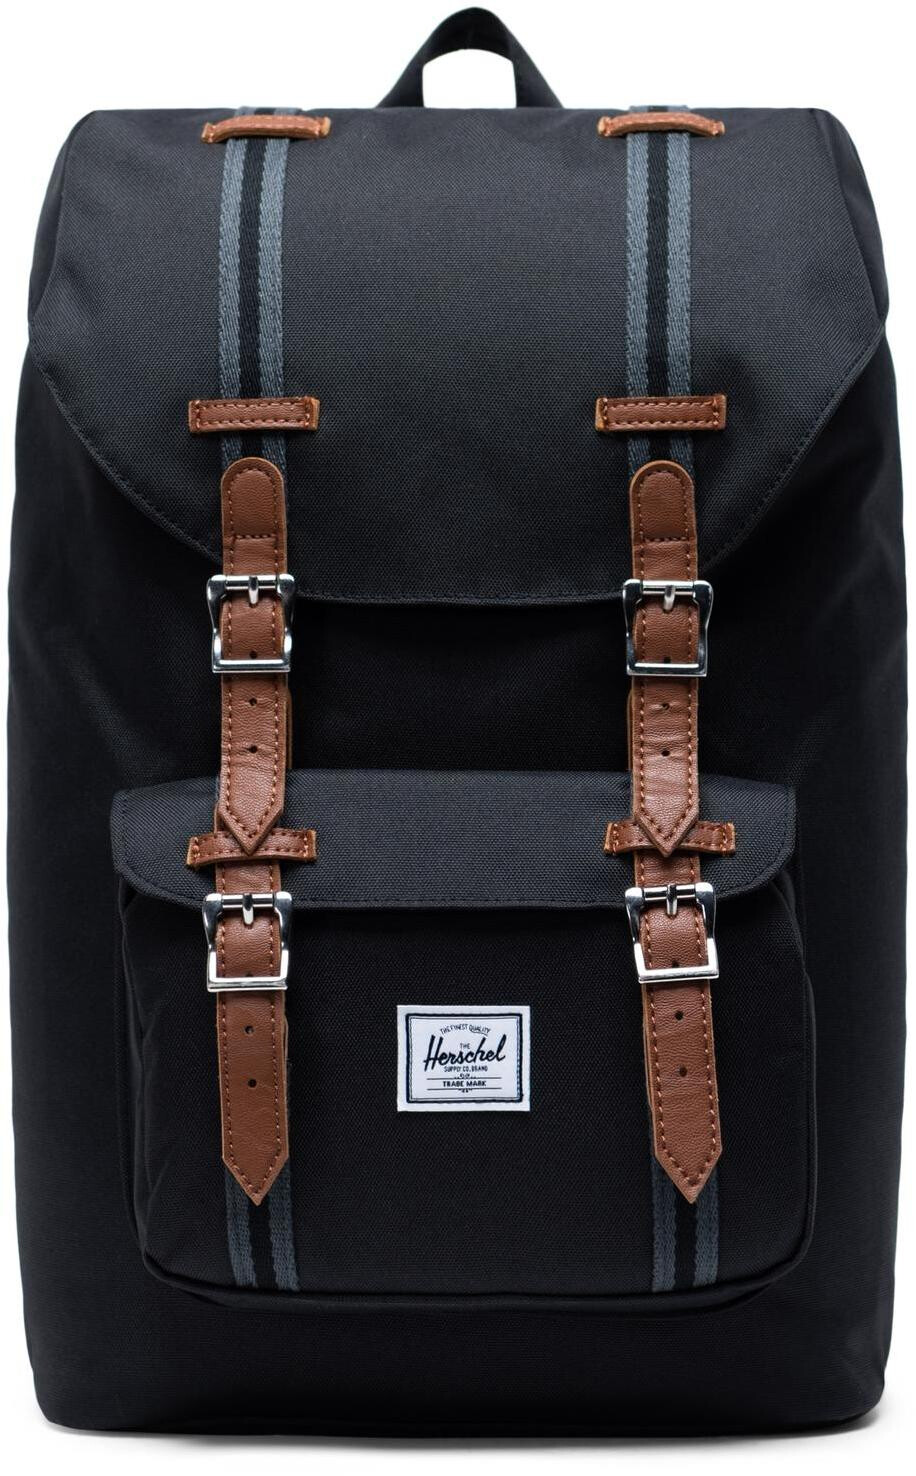 Herschel Little America Mid-Volume Rygsæk 17L, black/black/tan (2019) | Travel bags